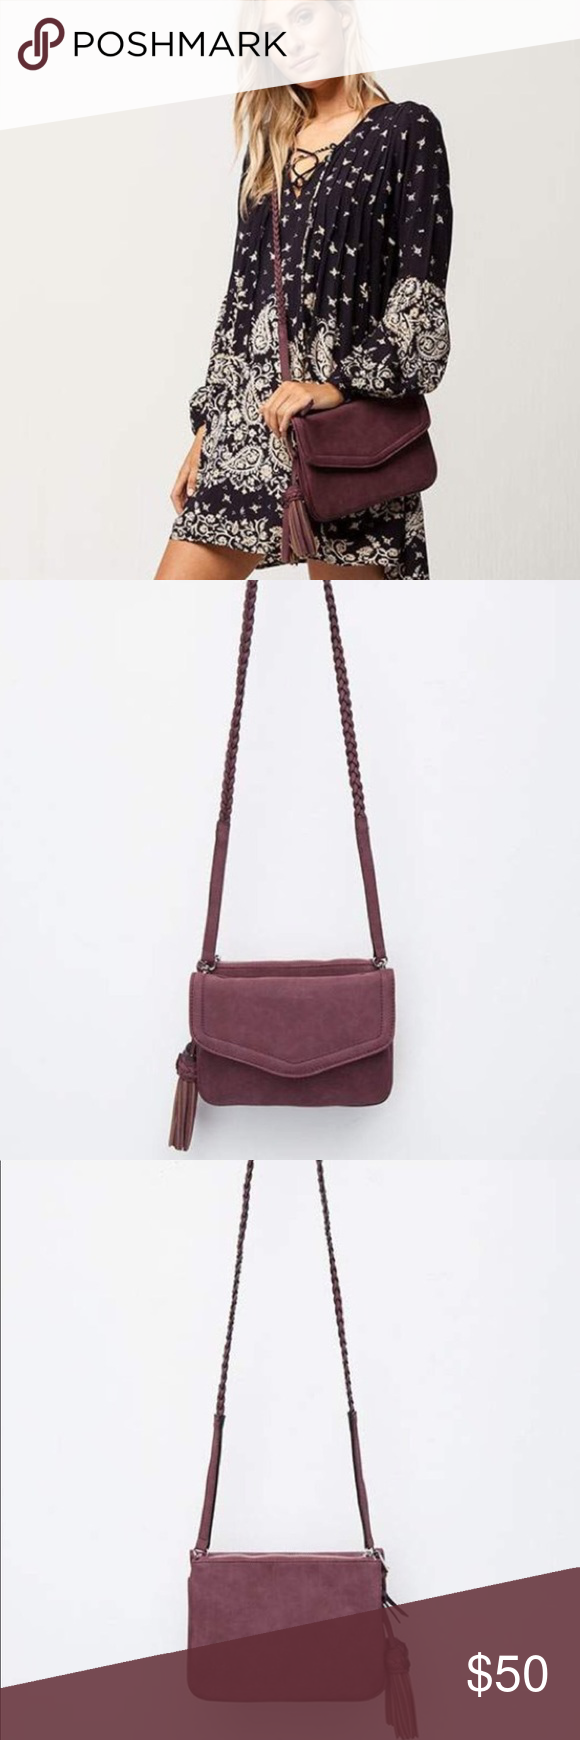 b1cad341848e Annette Braided Vegan Crossbody